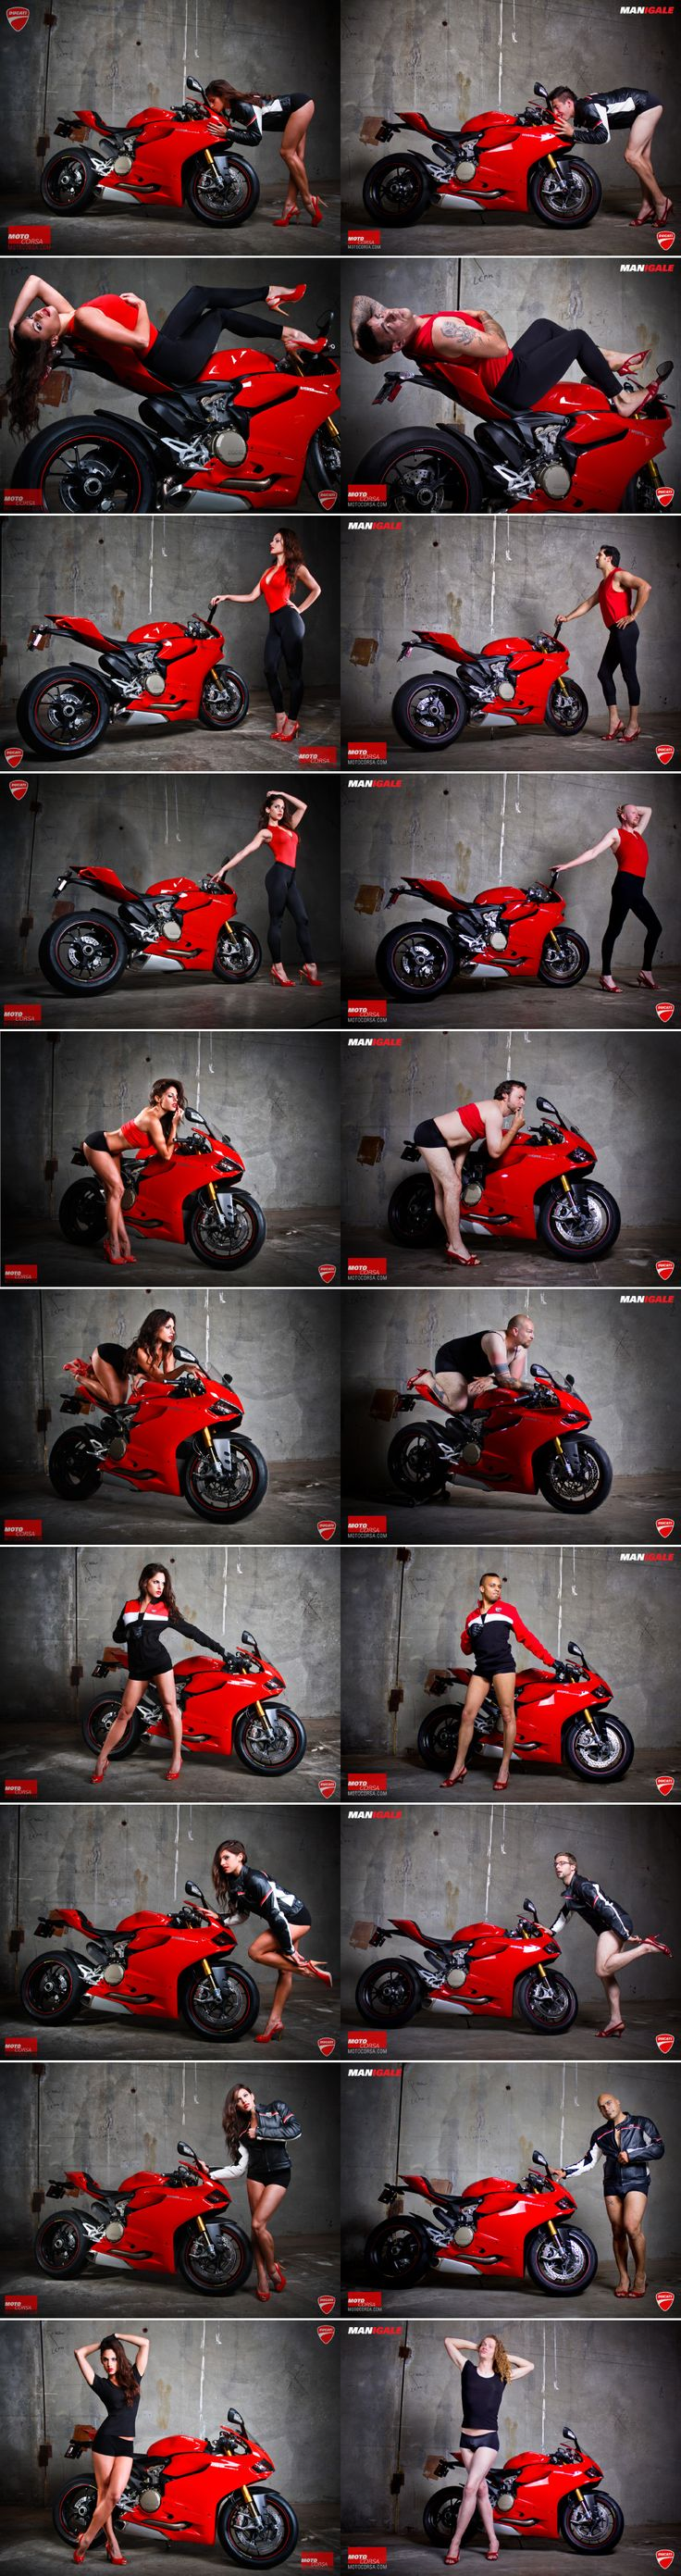 Ducati ad parody - Psst! It's the bike that's for sale. But when models seductively languish over motorcycles, prospective customers may forget that. Arun Sharma, the general manager of a Ducati dealership in Portland, Oregon, understands this truth. That's why commissioned a series of images of men and women flaunting their bodies on the Ducati 1199 Panigale sportsbike. The women are beautiful. The men are…well, let's just say that they have excellent personalities.